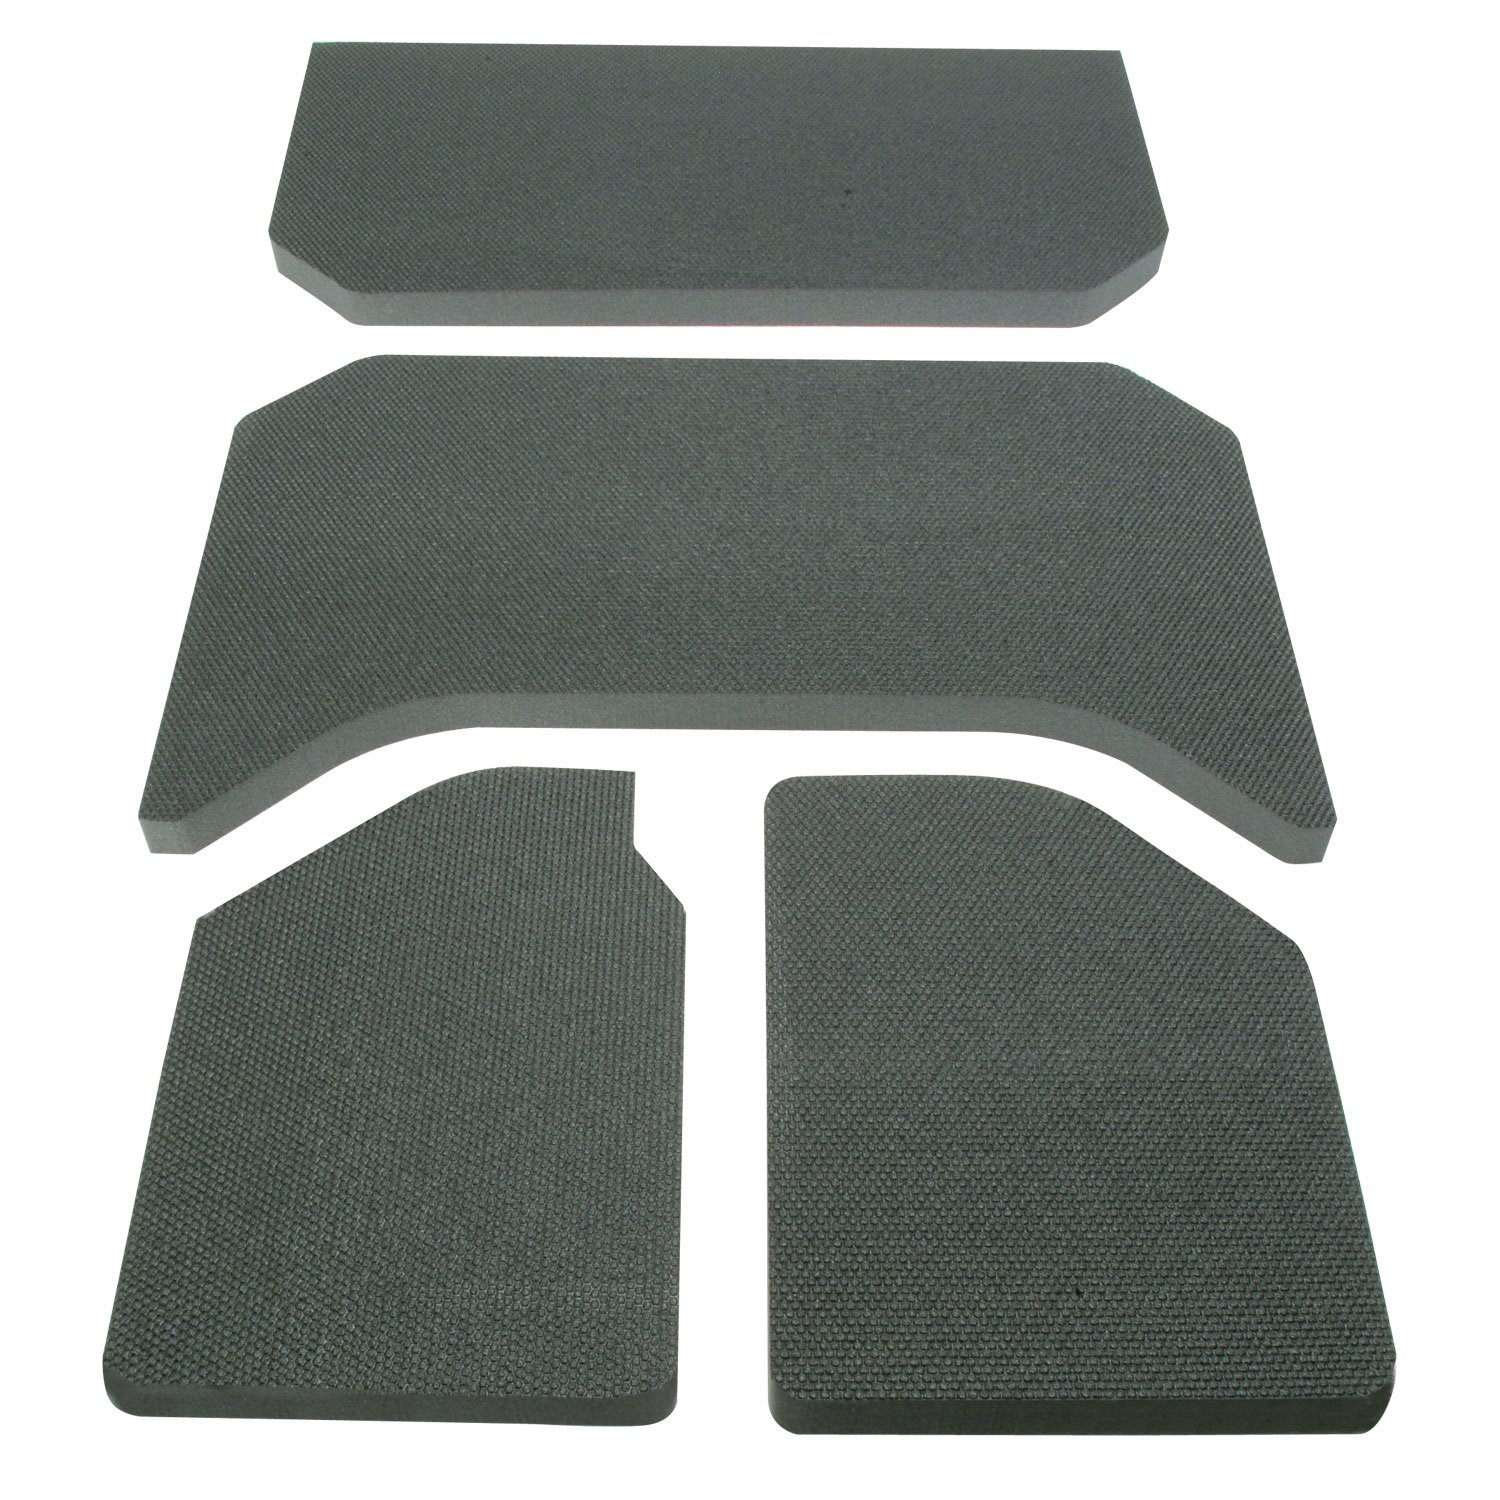 DEI 050137 Boom Mat Sound Deadening Headliner for 4-Door Jeep Wrangler (2011-2016) - Black